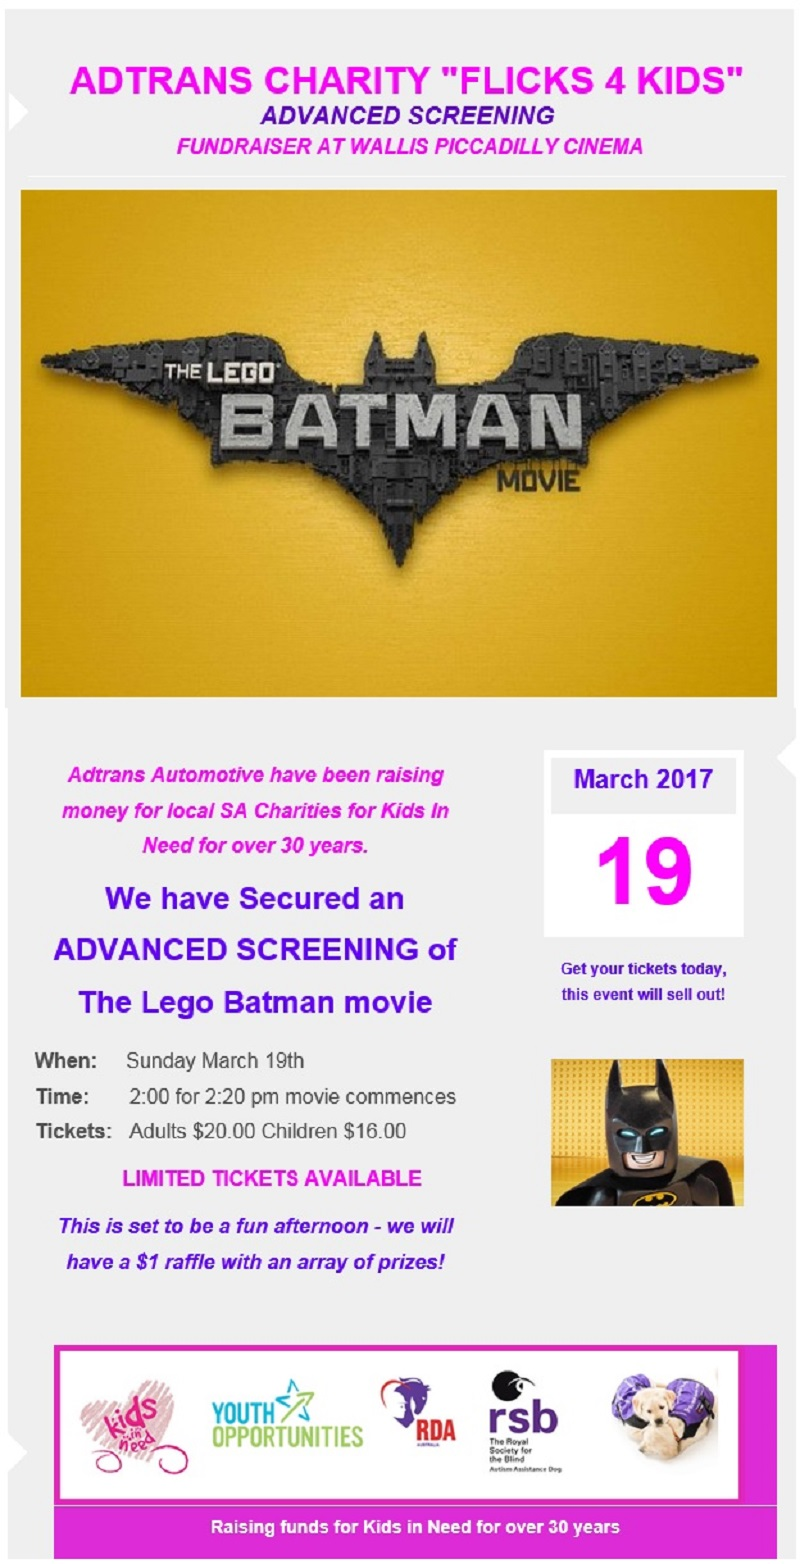 "Adtrans Charity ""Flicks 4 Kids"" - The Lego Batman Movie Fundraiser"